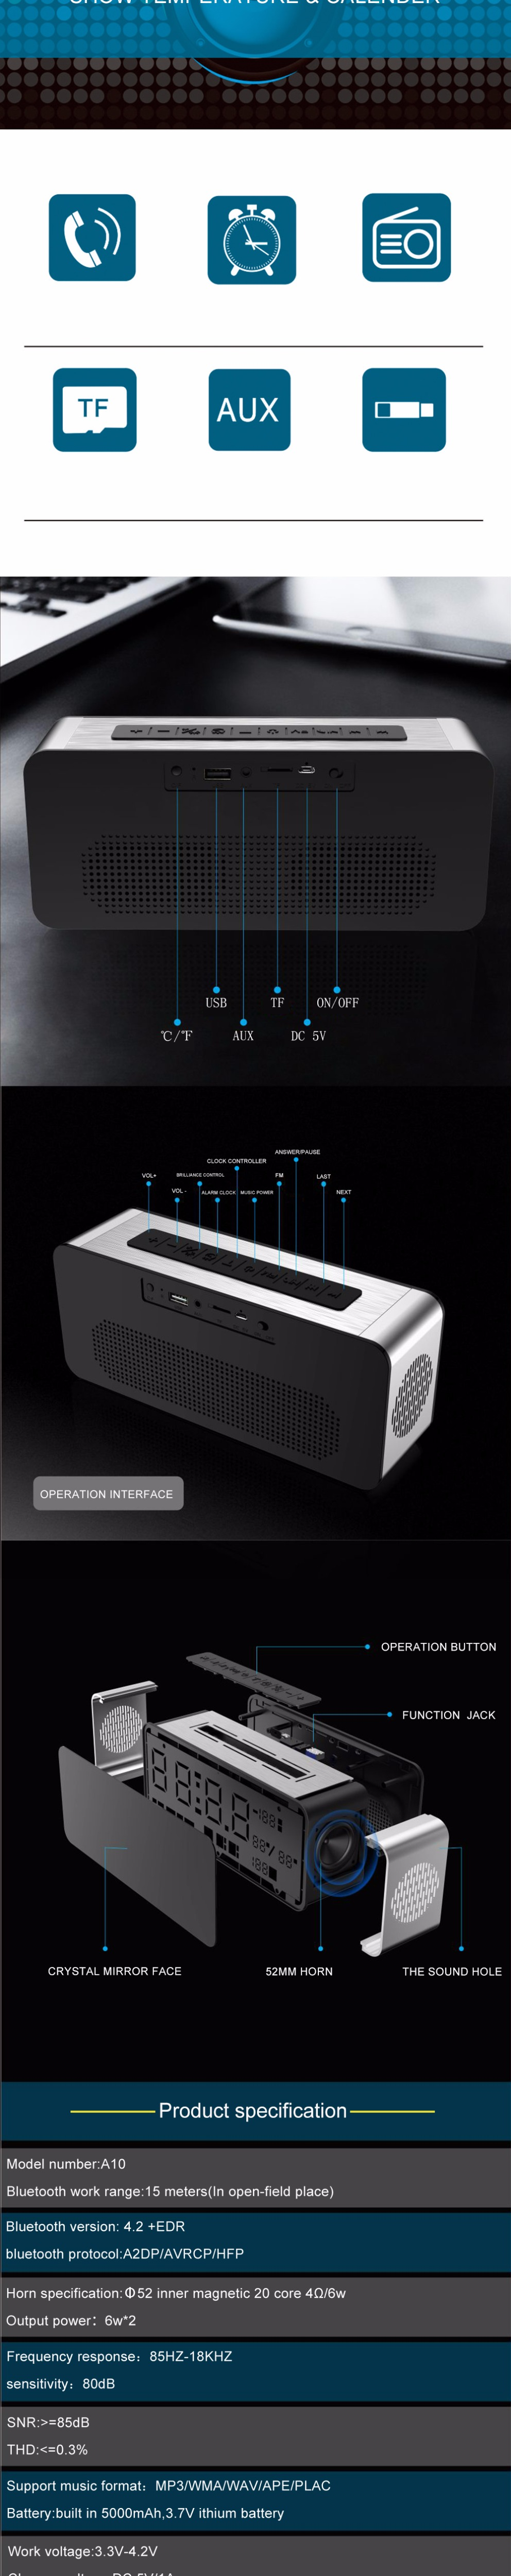 Newest Sardine A10 portable bluetooth speaker 5000mAh alarm clock MP3 speaker 52mm horn big sound for party TF card USB FM radio